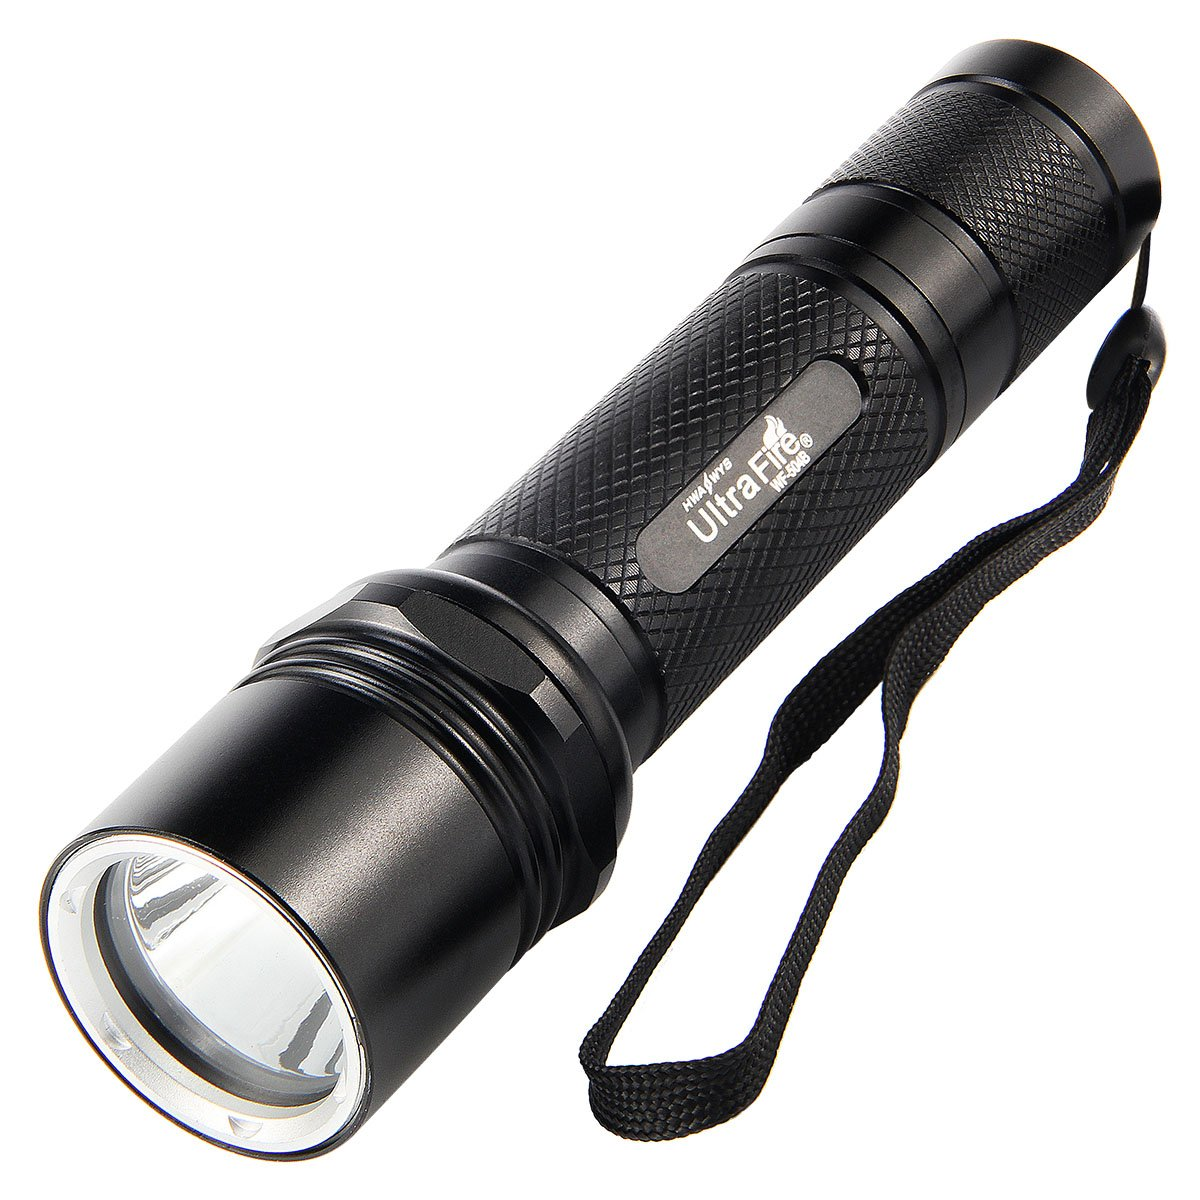 ULTRAFIRE Ultra Bright Magnetic Based LED Camping and Emergency Lantern Flashlight